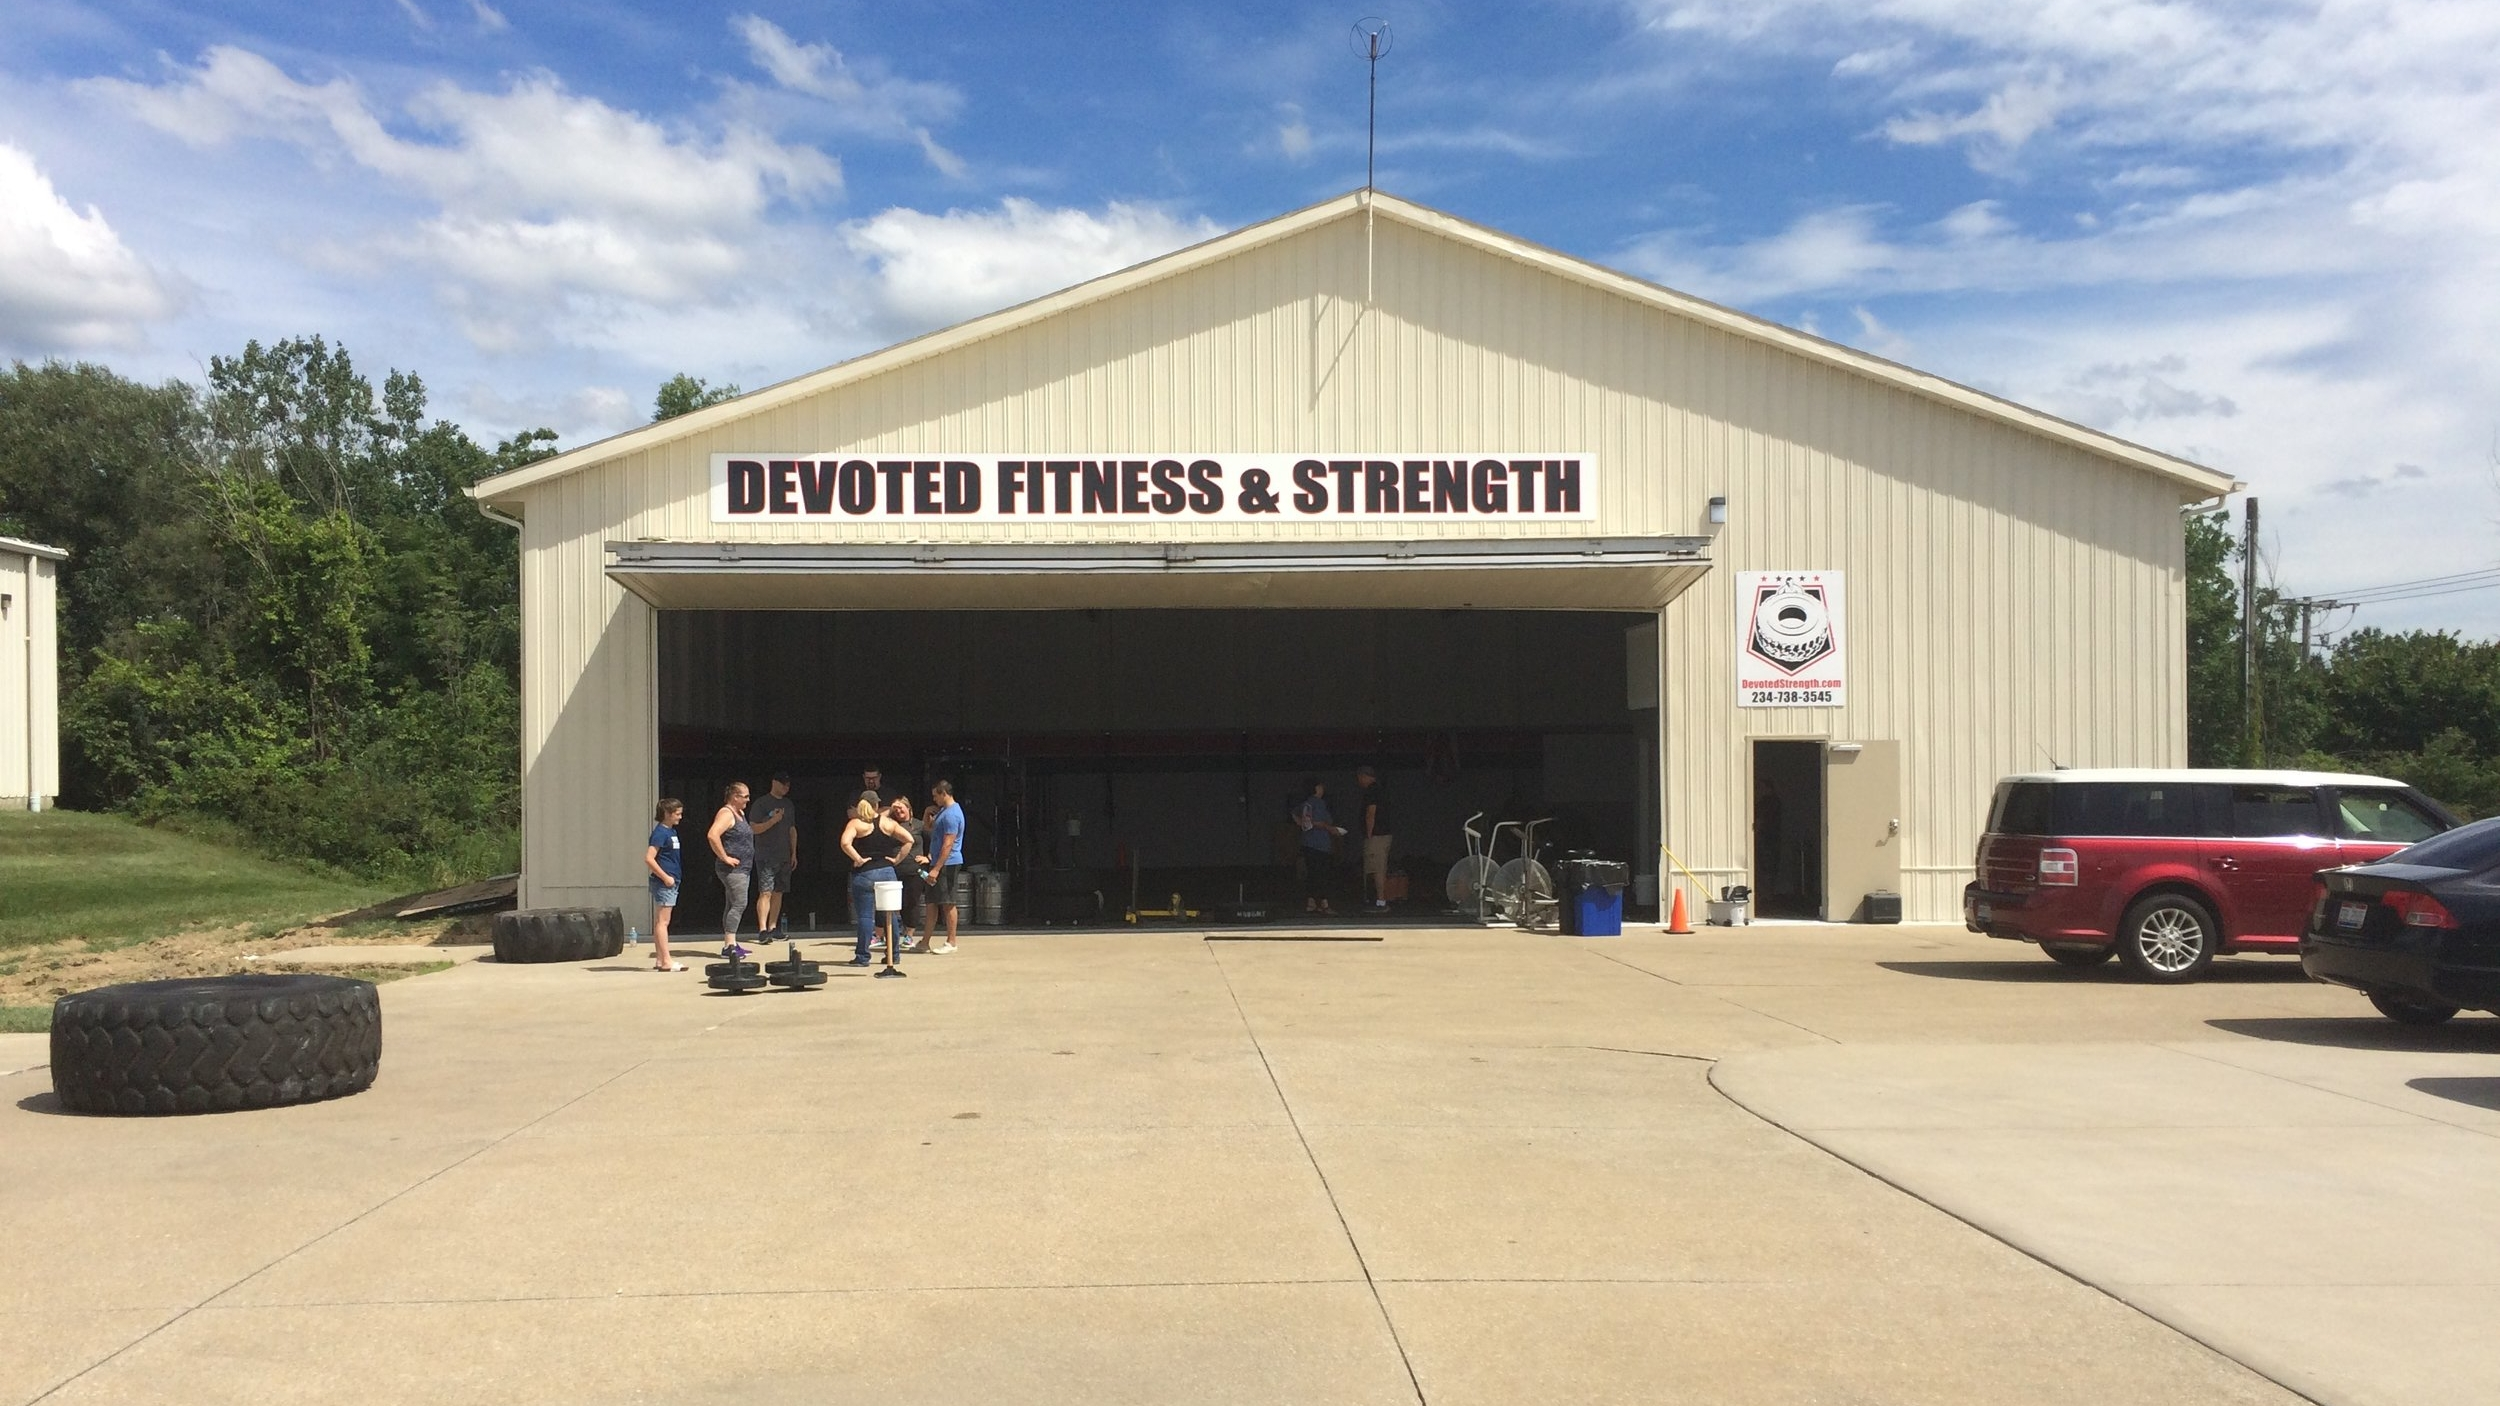 Devoted Fitness & Strength - 335 Remington Road, Cuyahoga Falls, OH